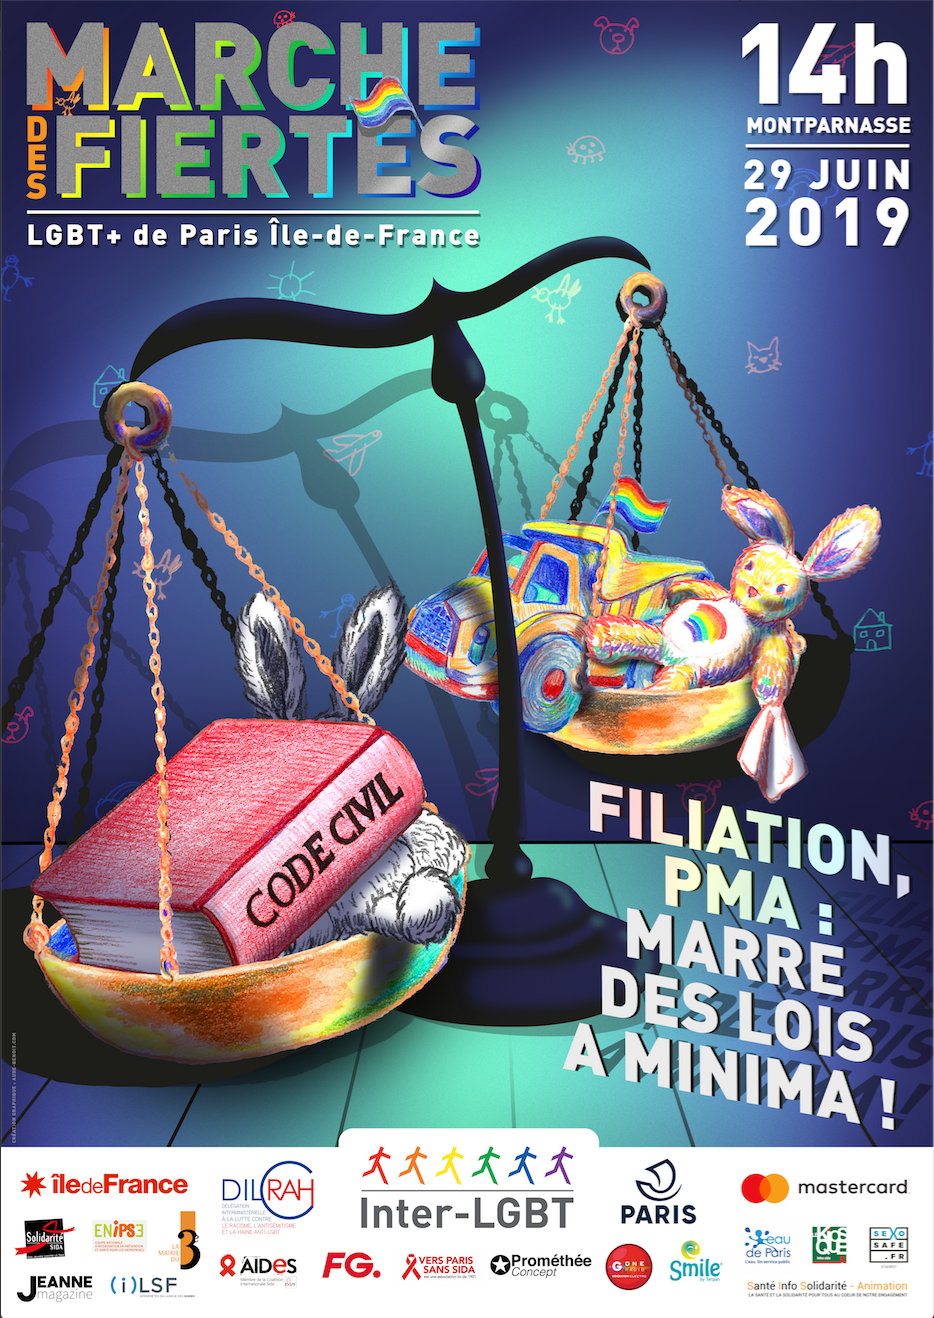 Affiche_Marche_2019_bassedef.png (1.73 MB)